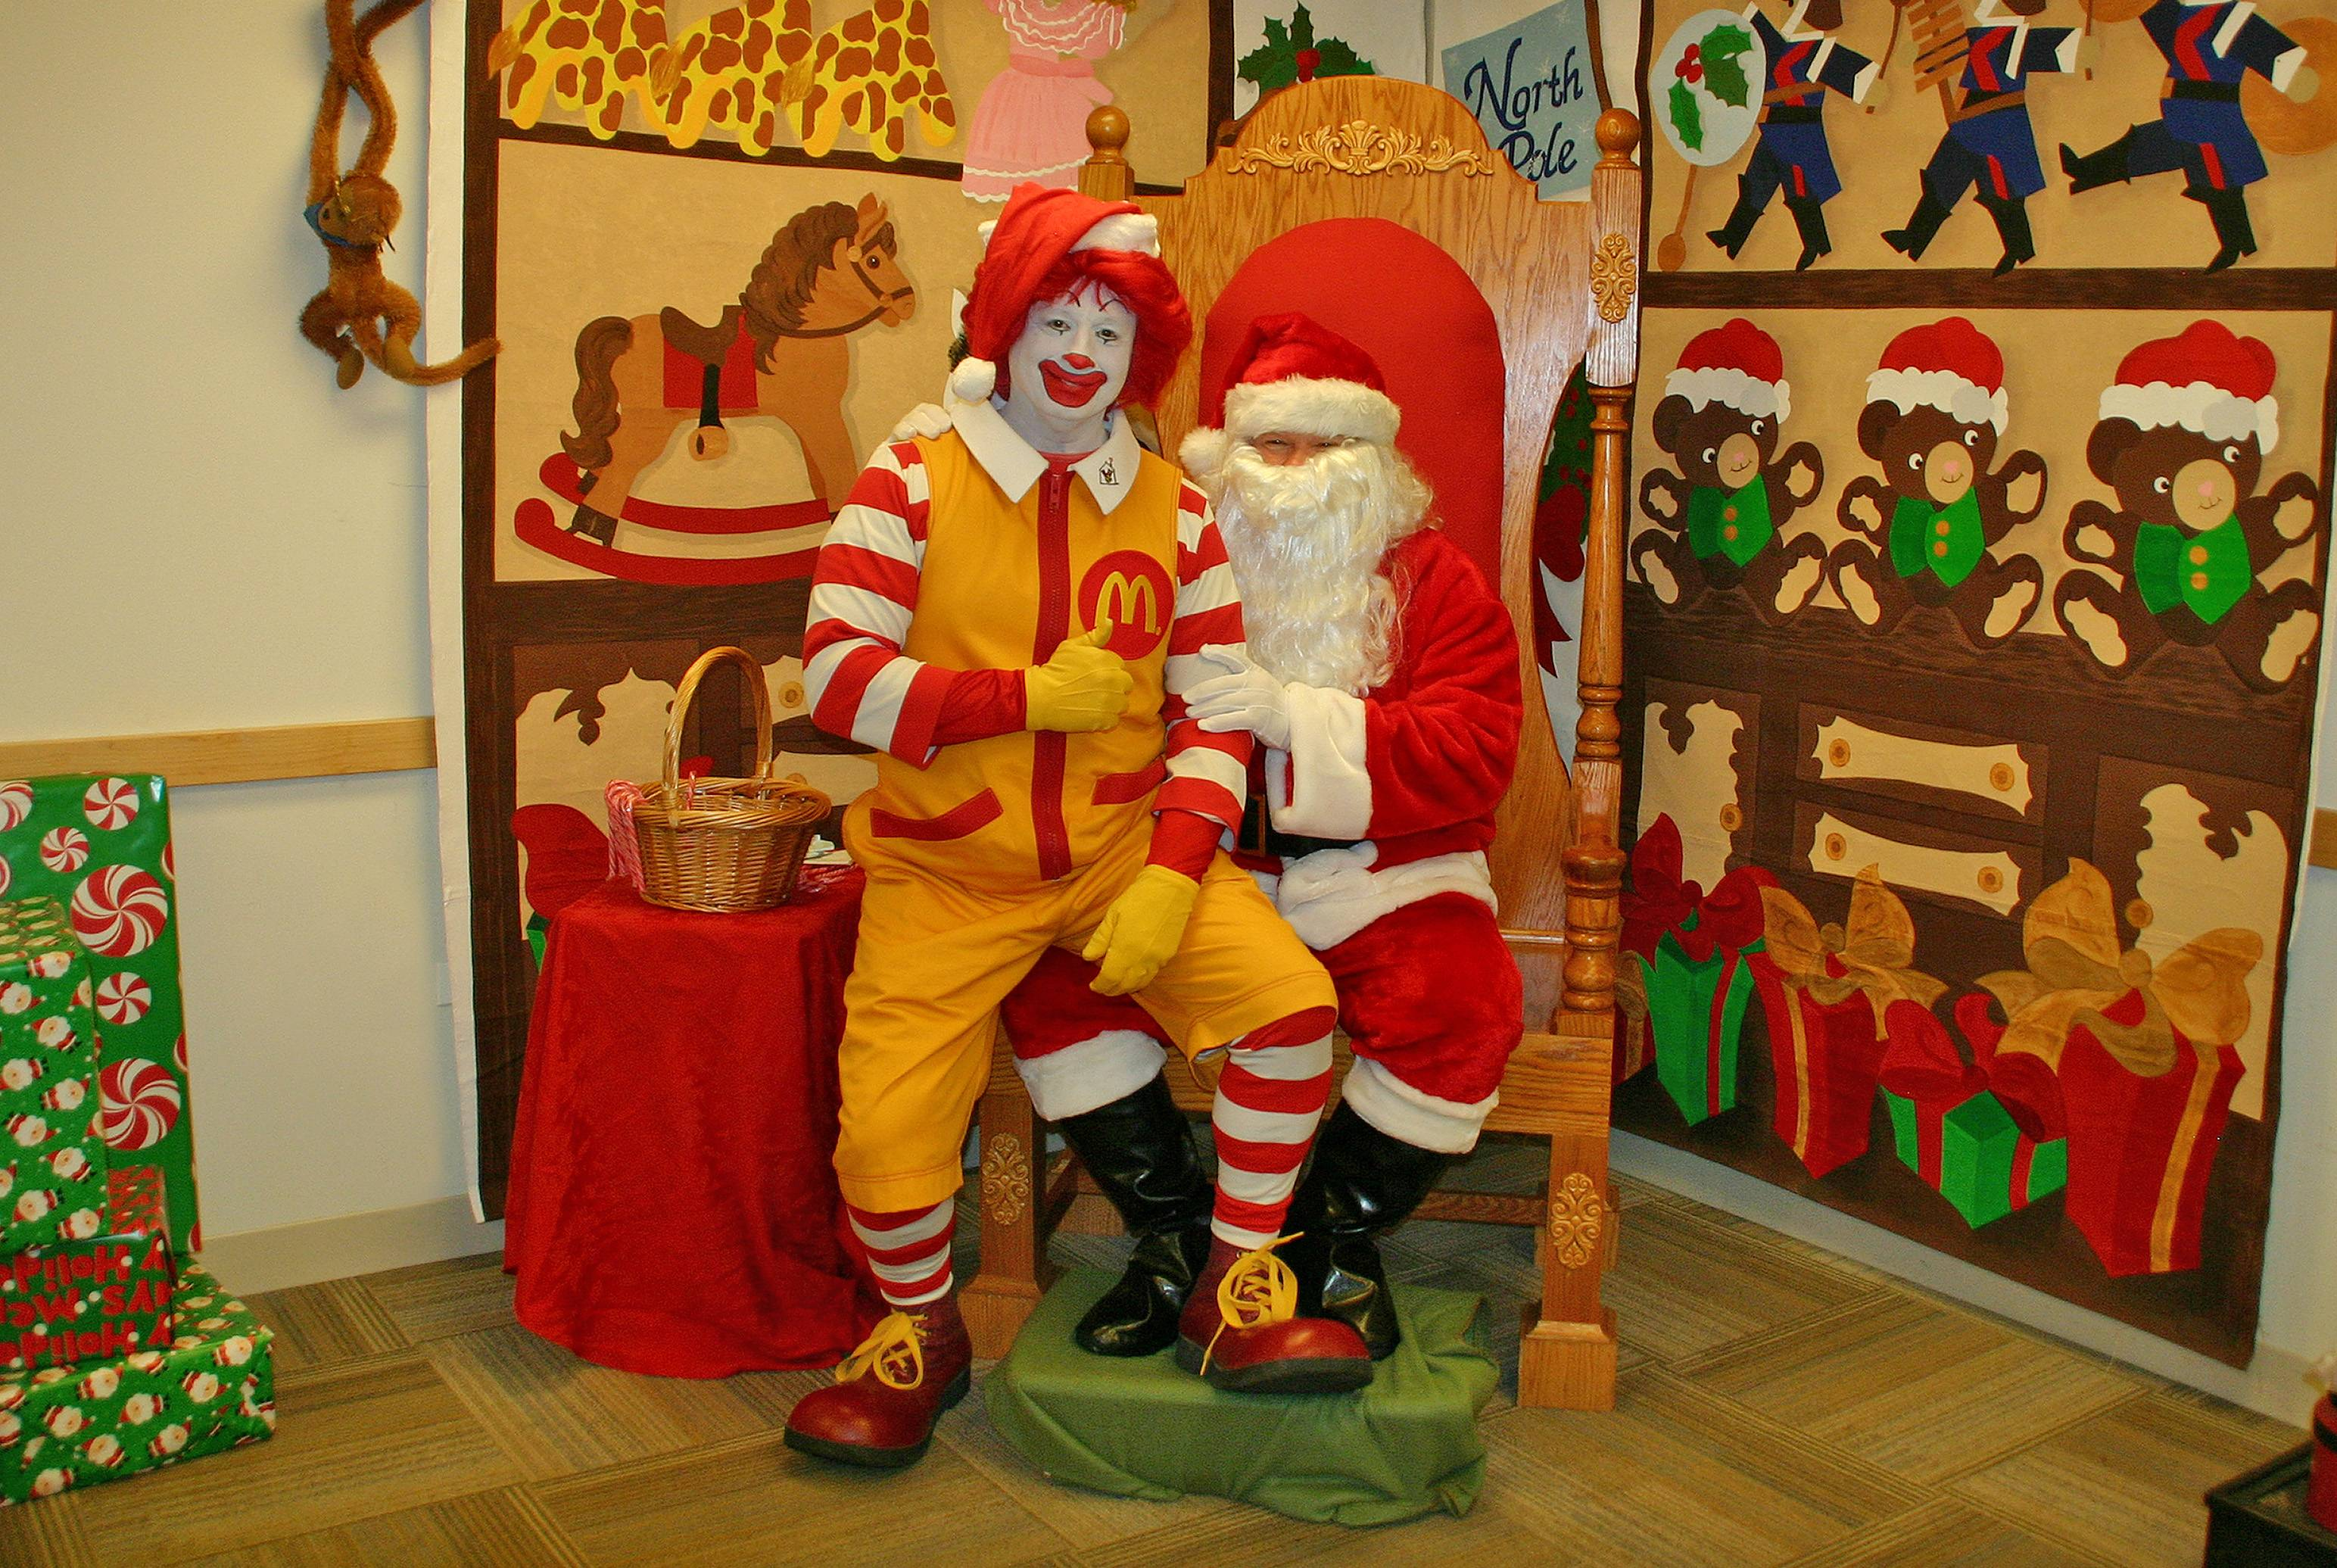 Join Ronald McDonald at Winter Wonderland, and have your picture taken with Santa.